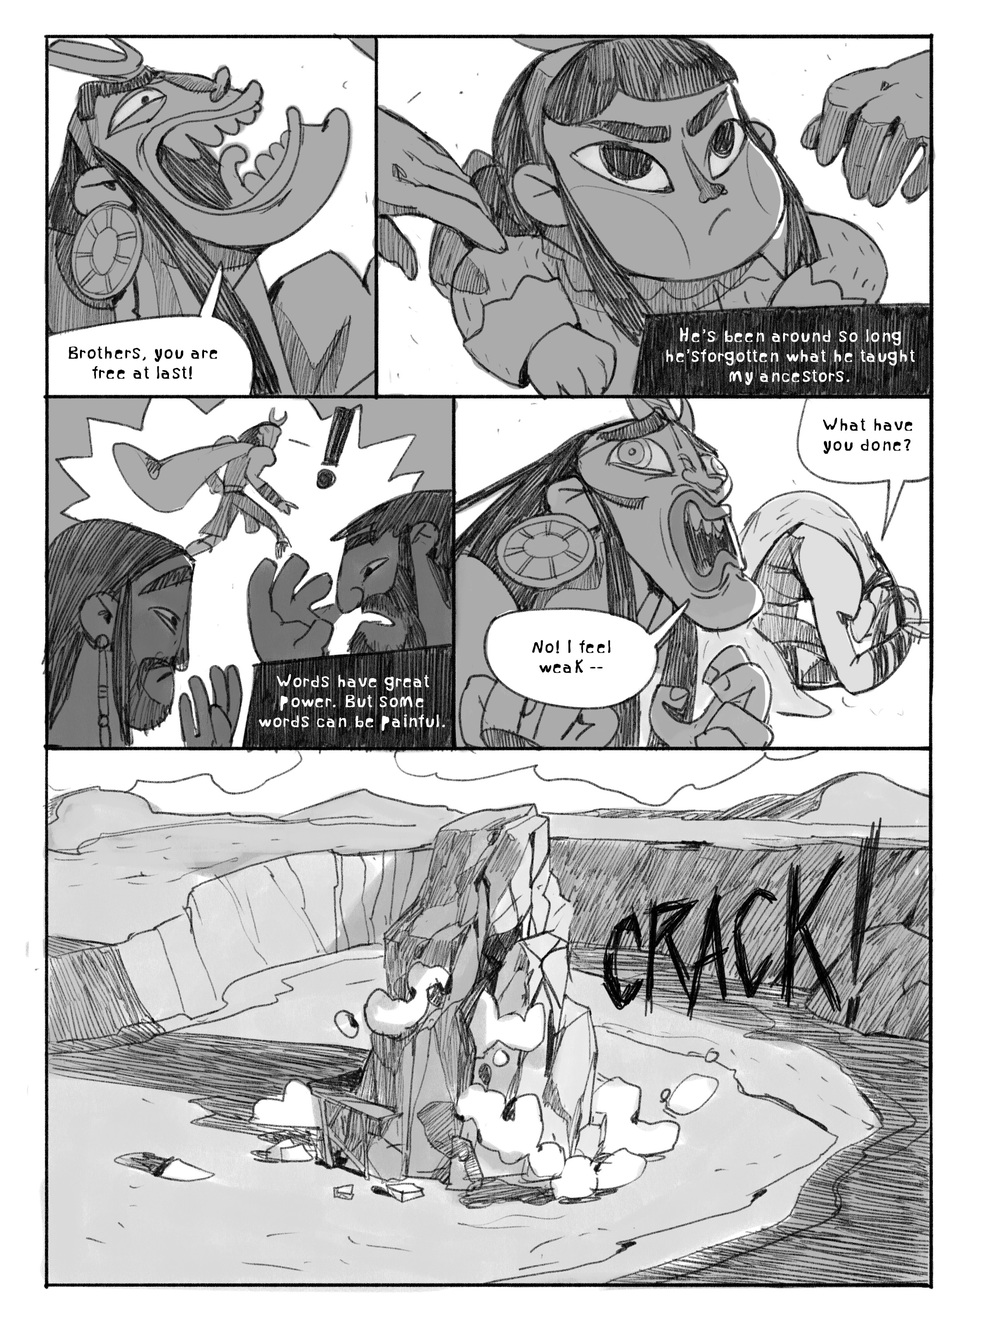 Sticks&Stones_Page12_final.jpg